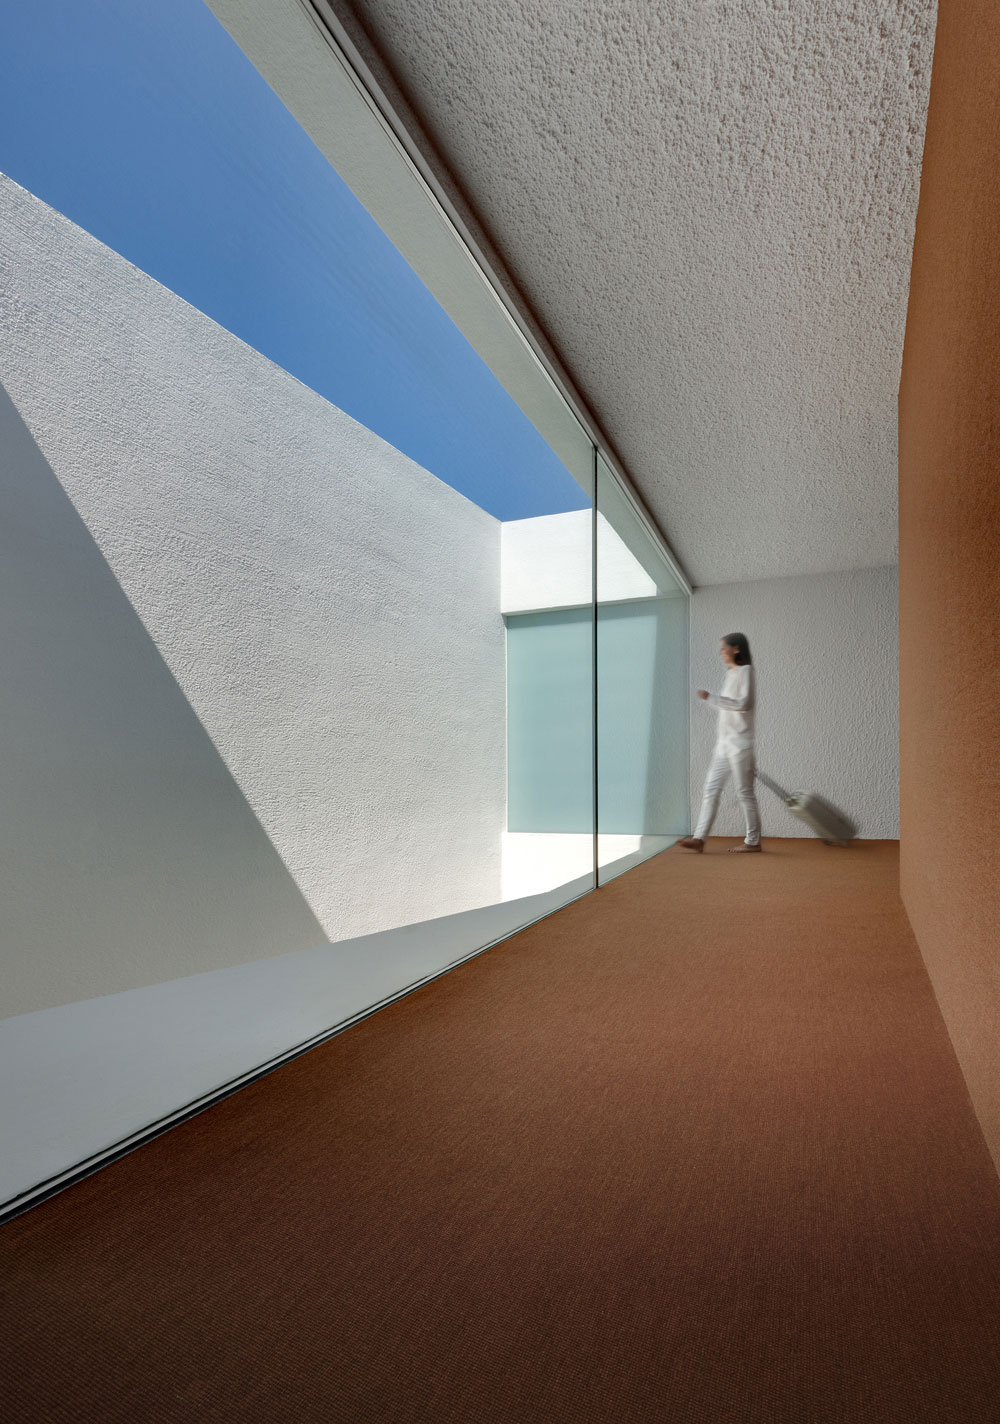 Hotel Pupp, Italy by Bergmeisterwolf Architekten + Christian Schwienbacher | Yellowtrace.